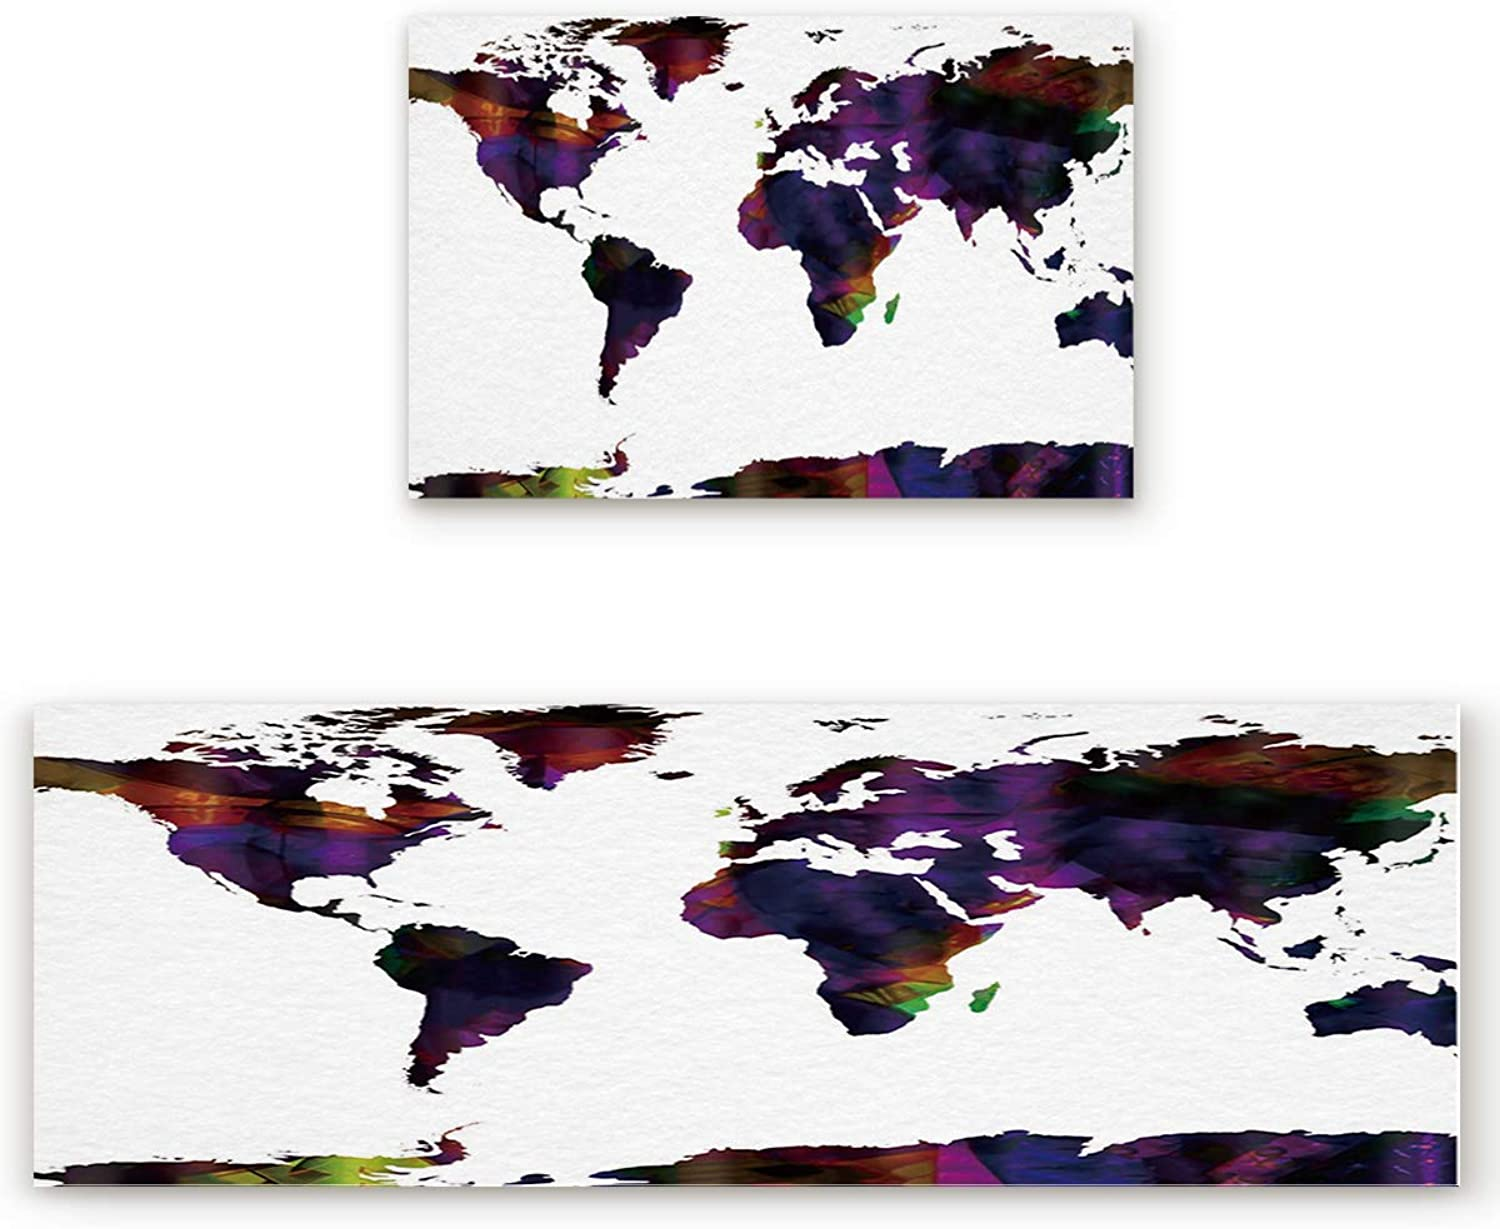 Savannan 2 Piece Non-Slip Kitchen Bathroom Entrance Mat Absorbent Durable Floor Doormat Runner Rug Set - World Map in Watercolor